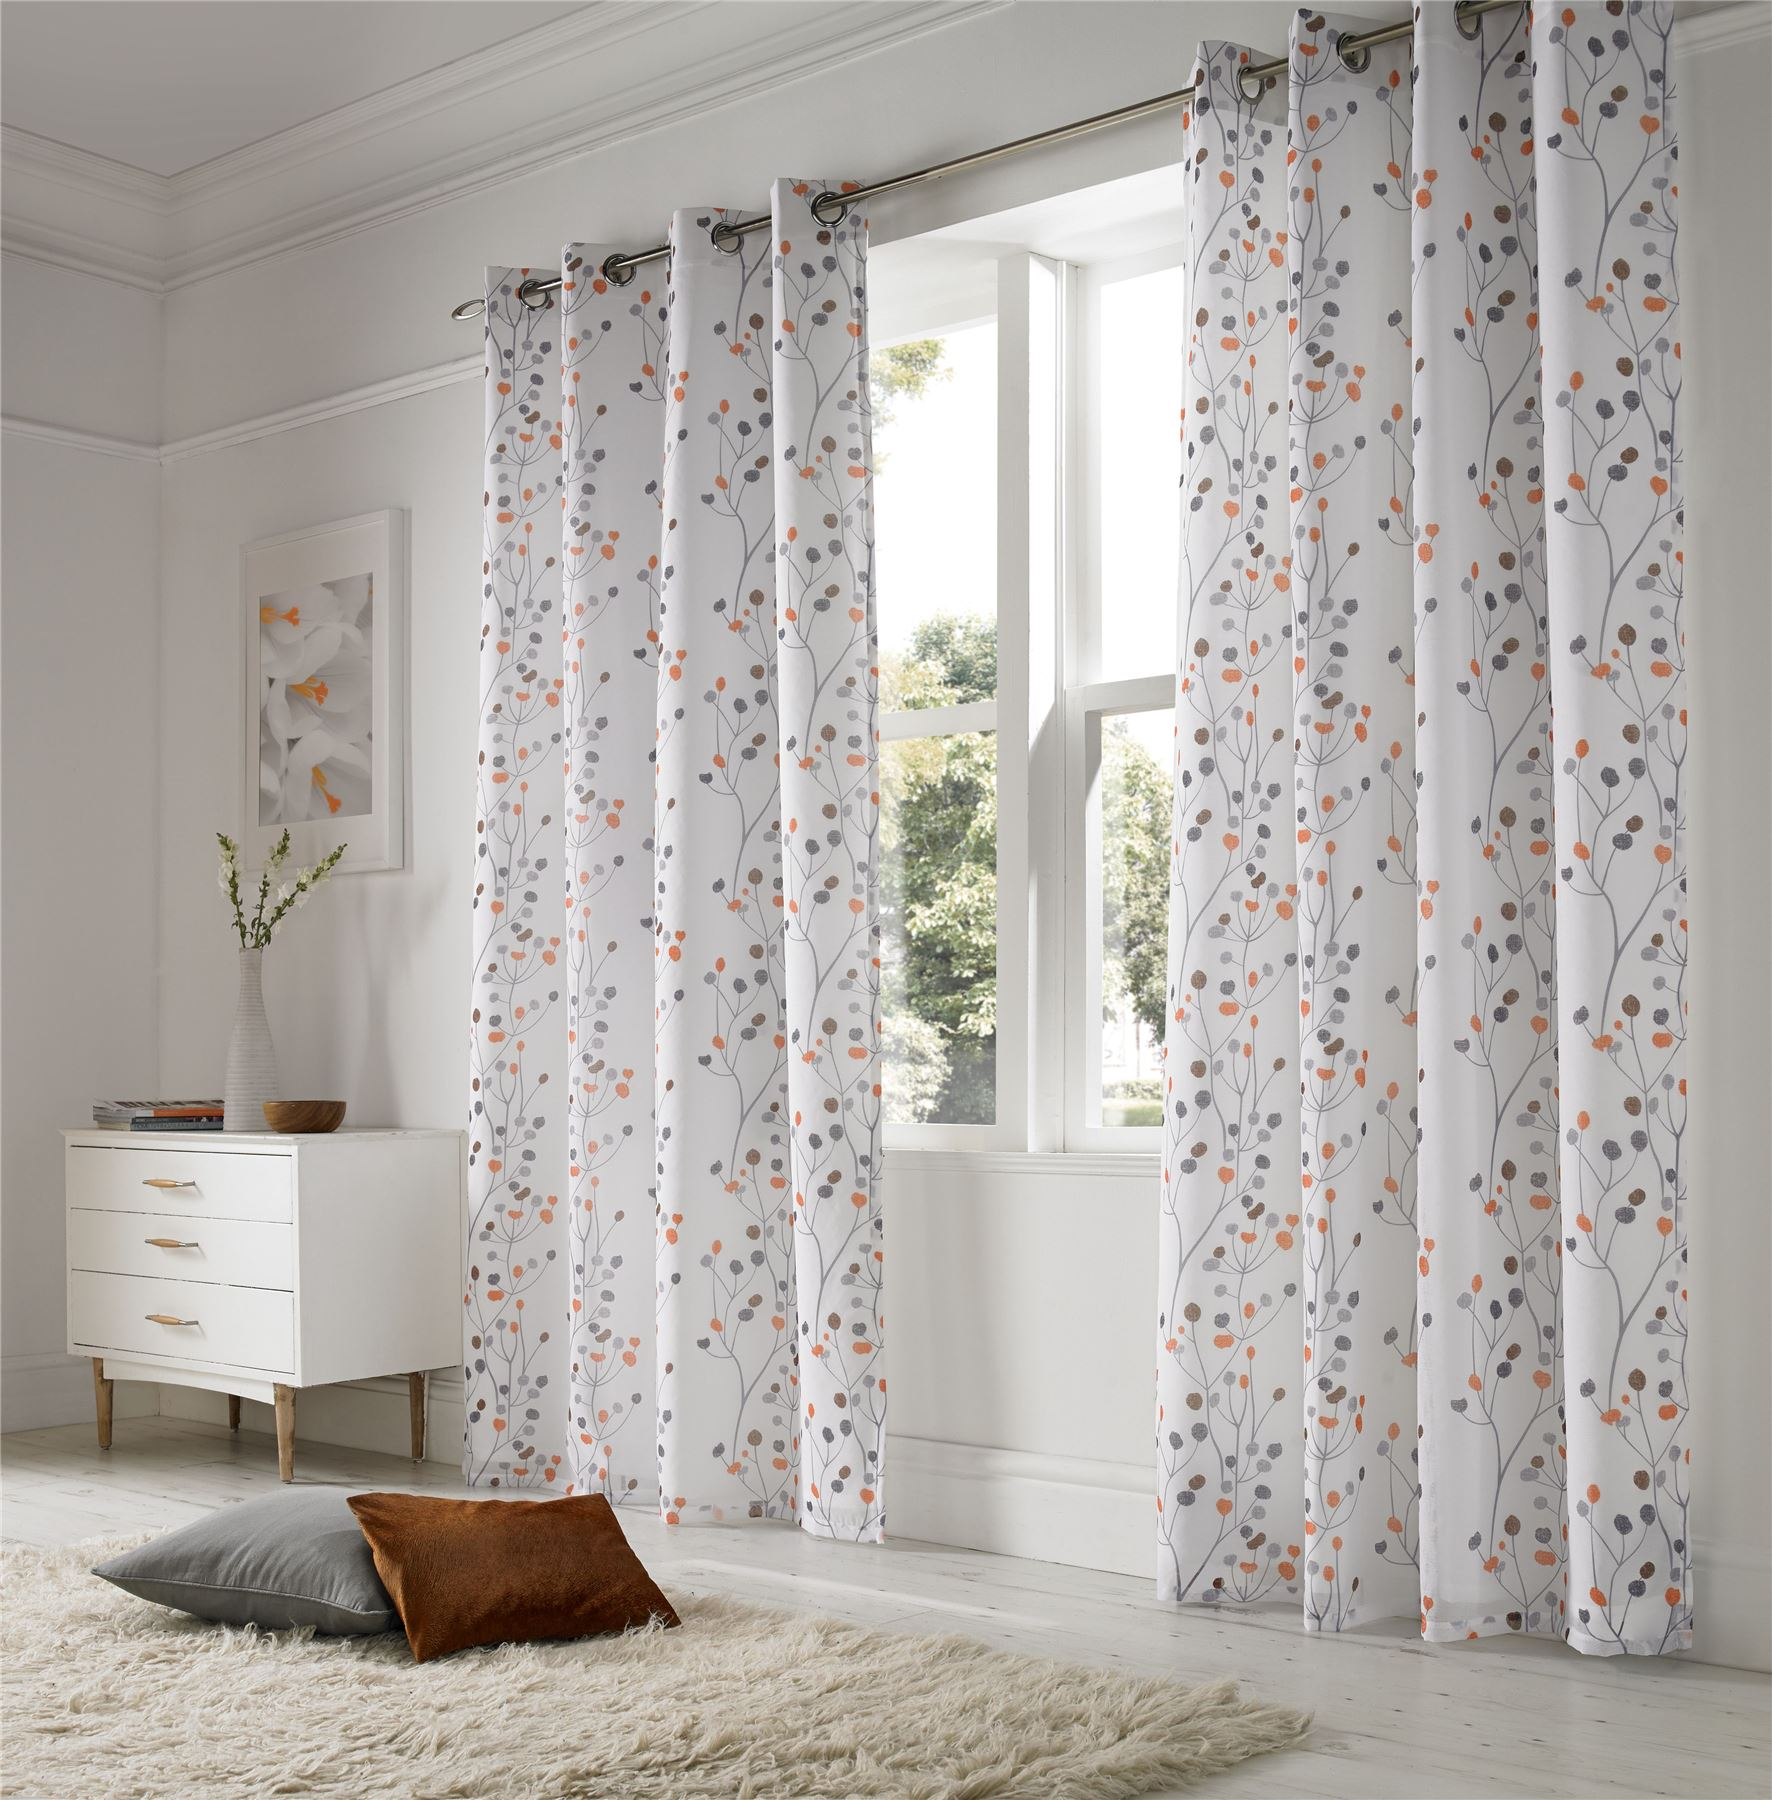 Linen Look Floral Orange White Lined Ring Top Voile Curtains Drapes 2 Sizes Ebay